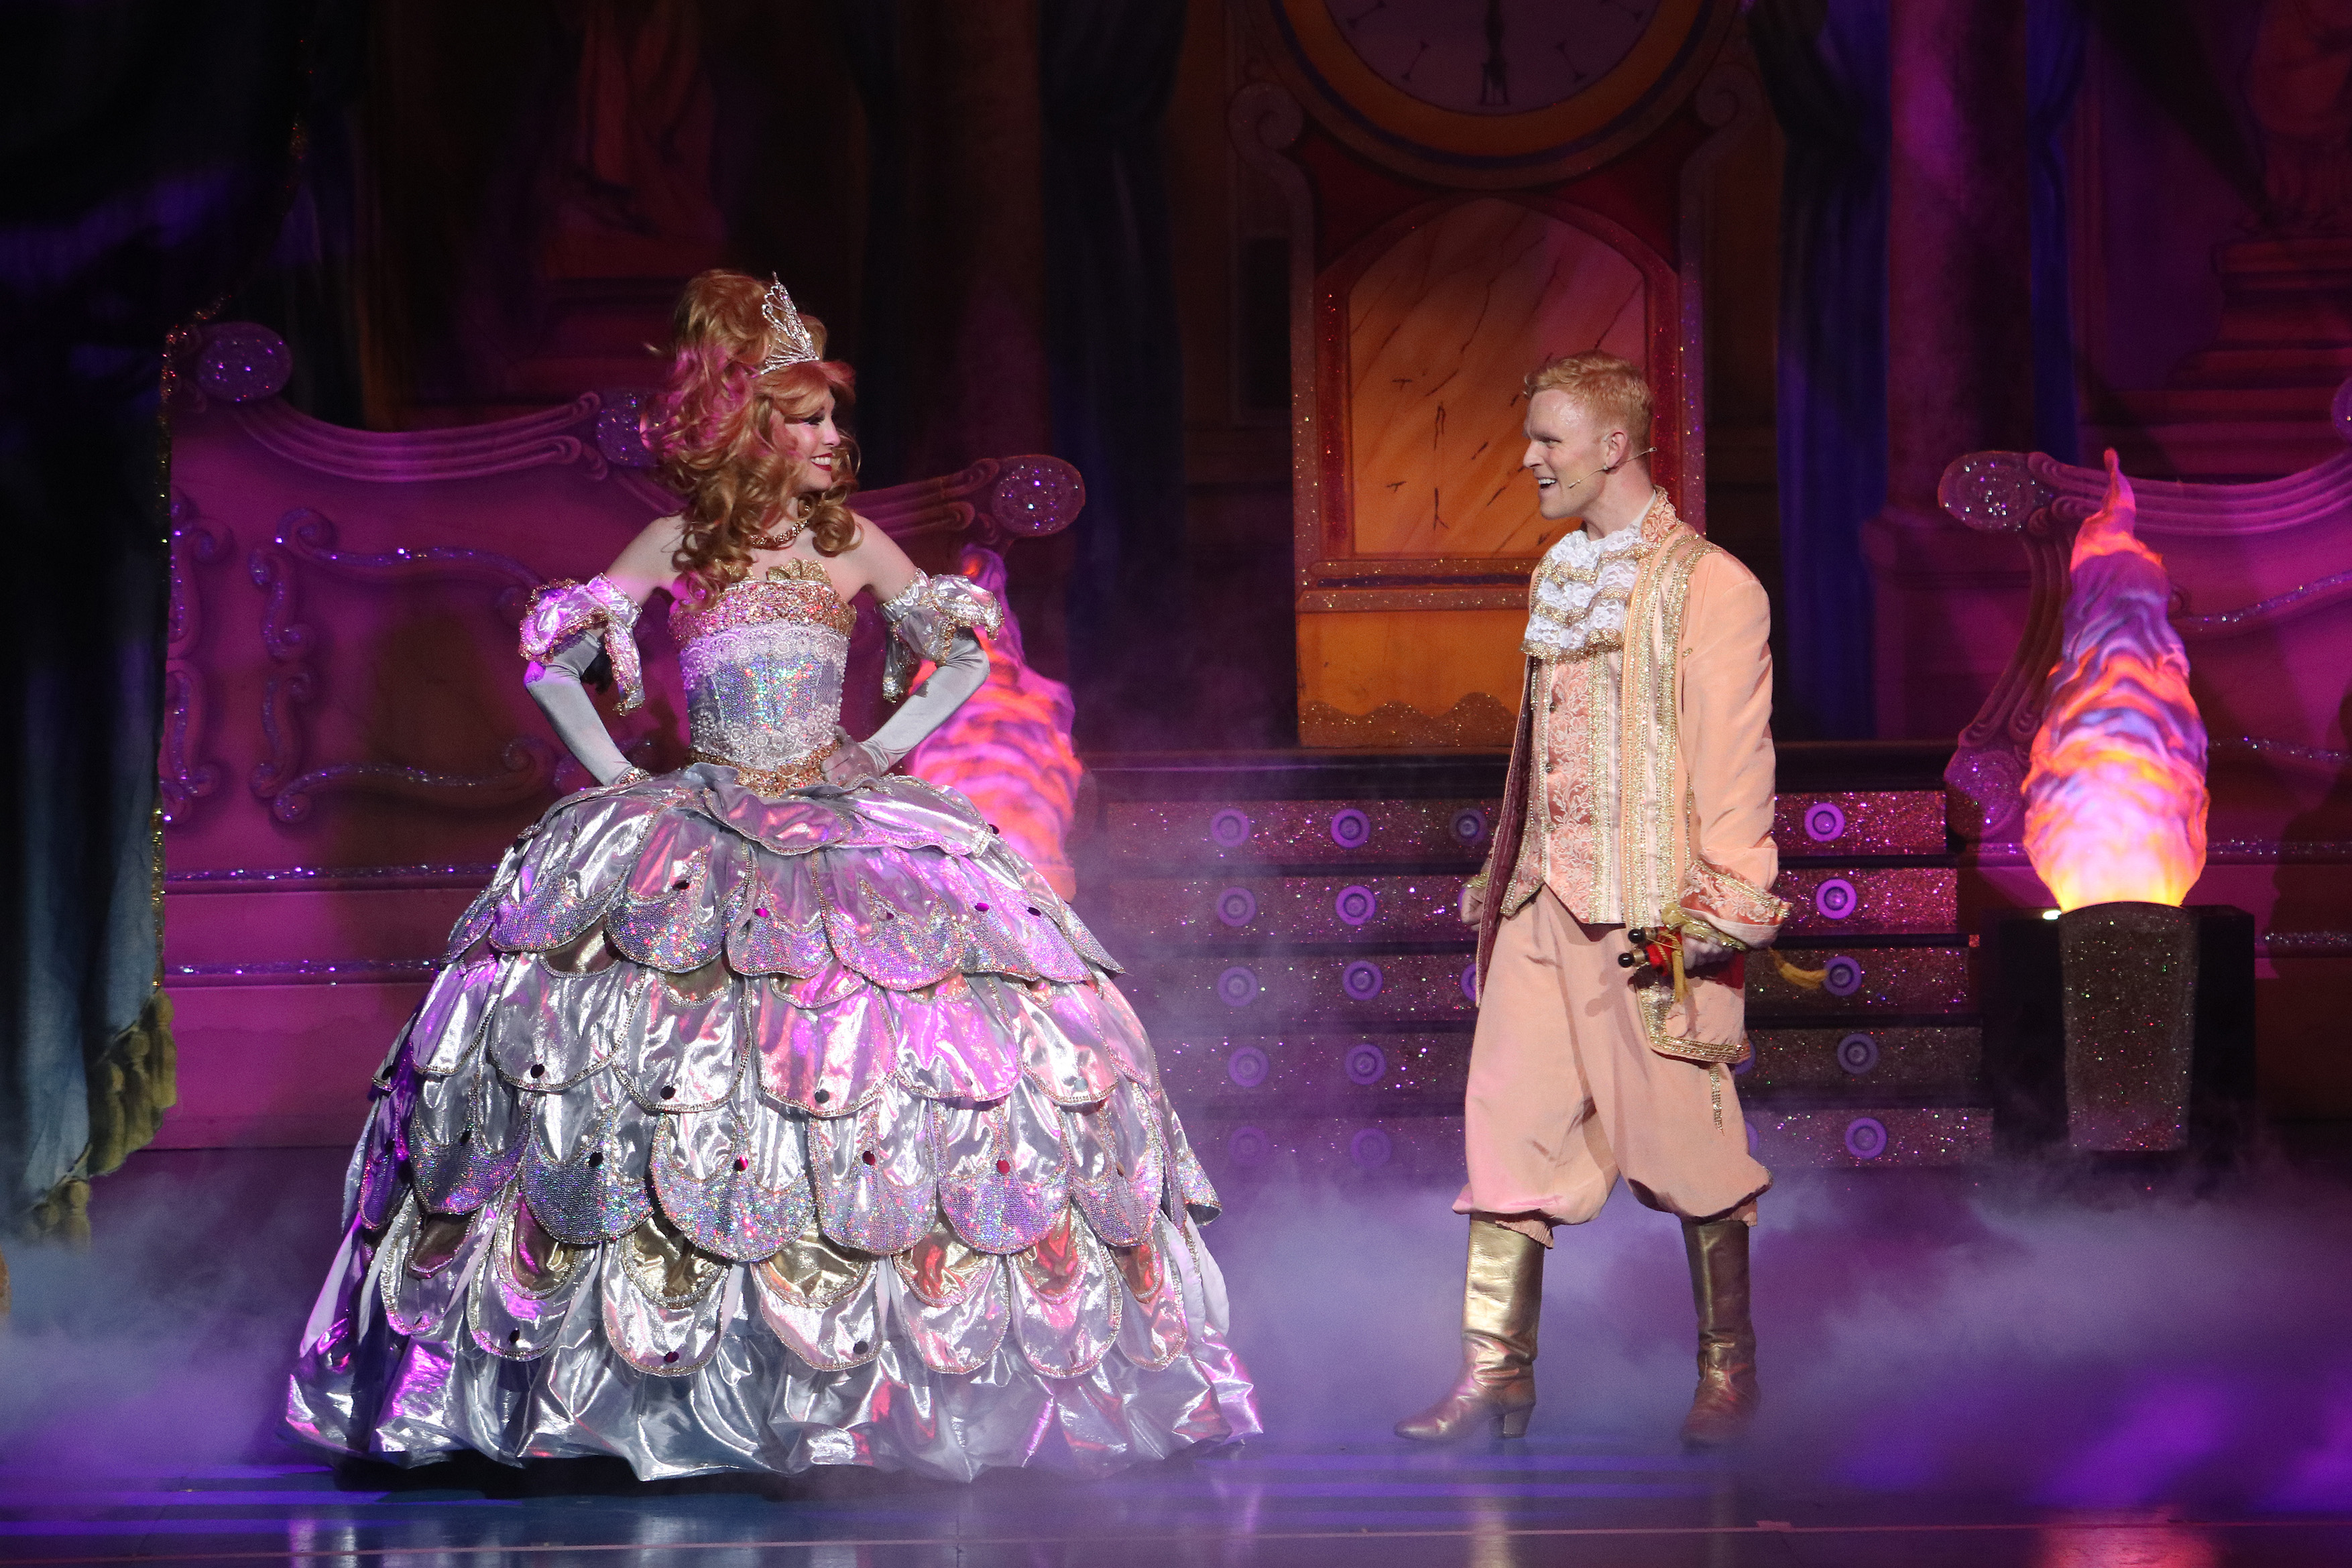 Cinderella Image 10 - Credit David Munn Photograph